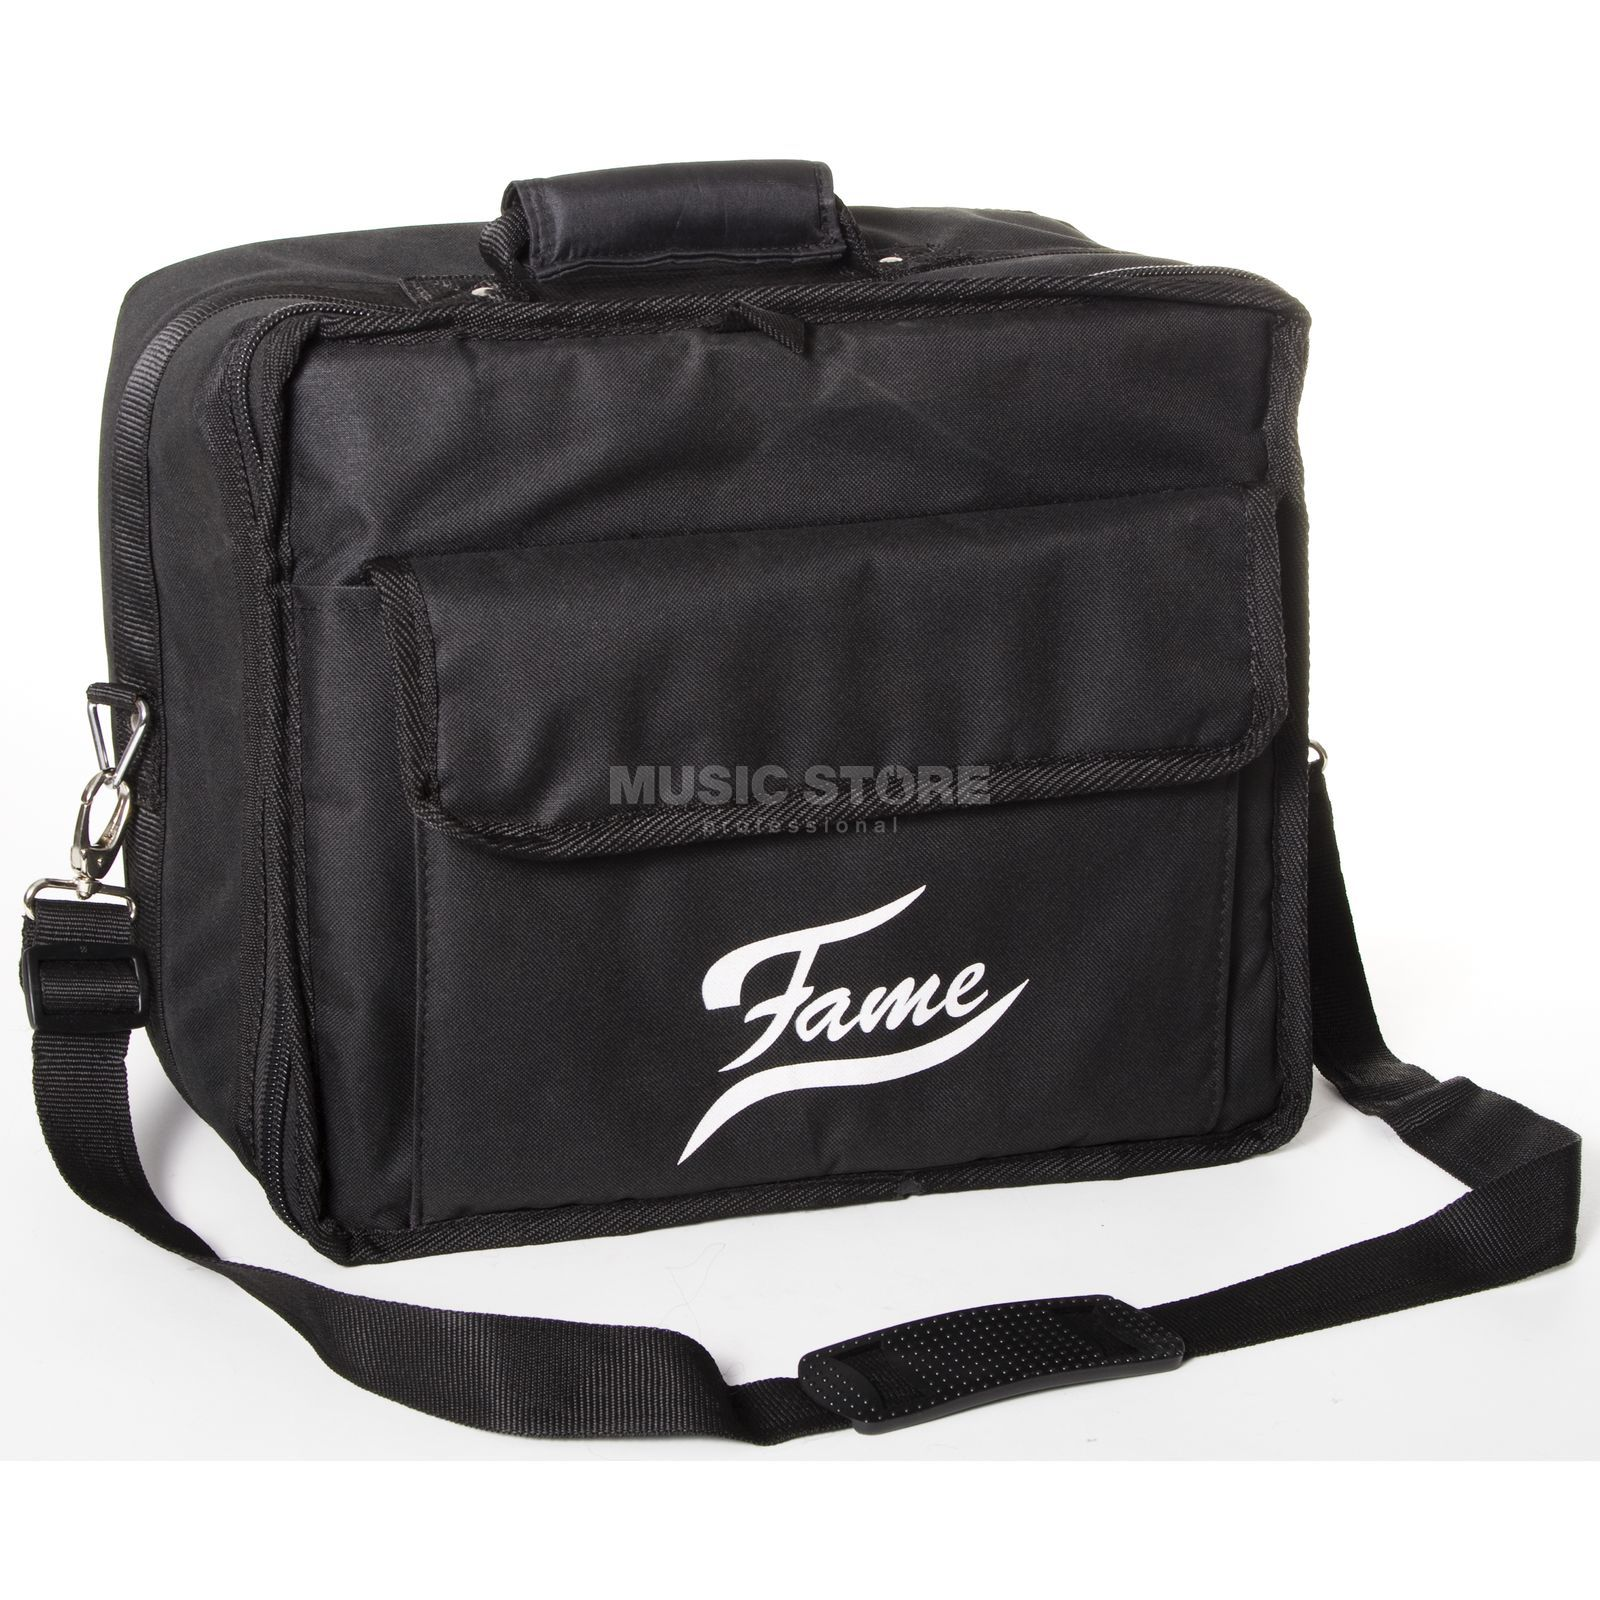 Fame Bag f. Double Pedal DDP, Black Product Image